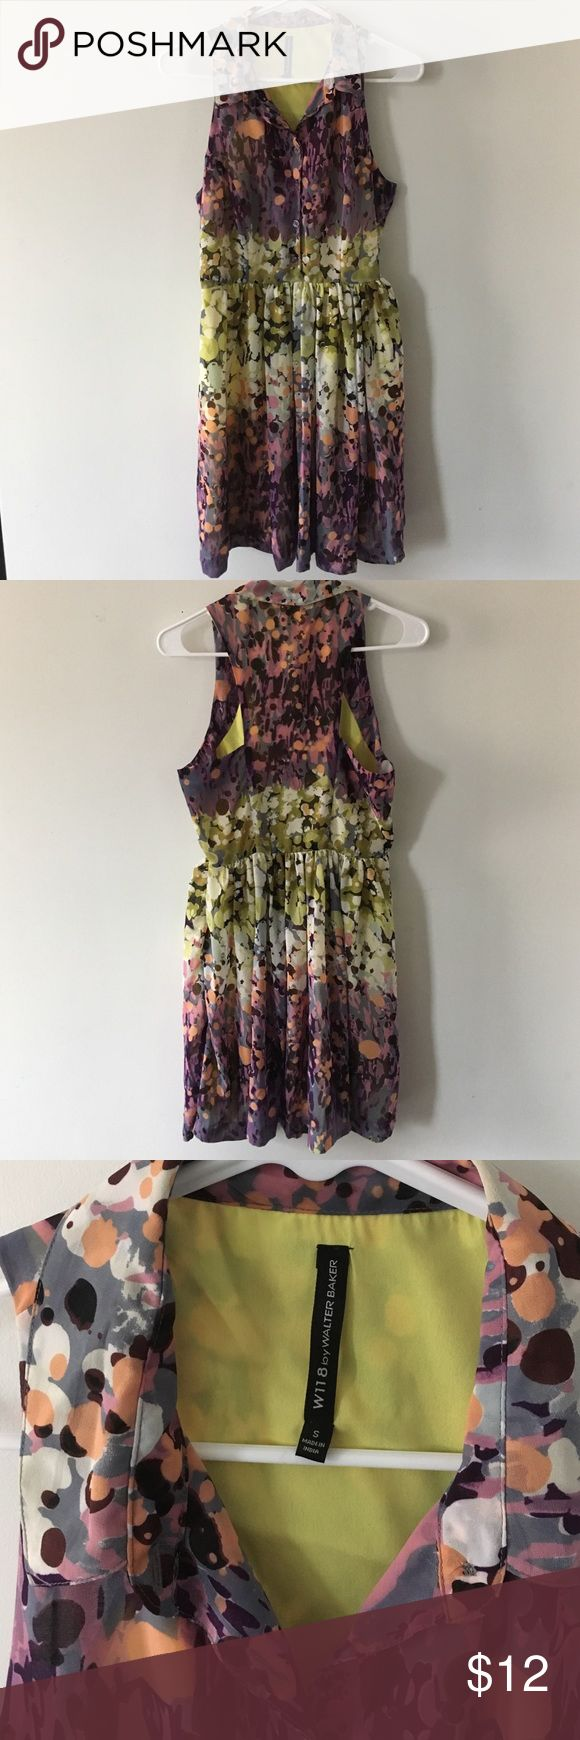 W118 by Walter Baker dress super cute back! perfect for summer weddings. only worn a few times. approx size 4 W118 by Walter Baker Dresses